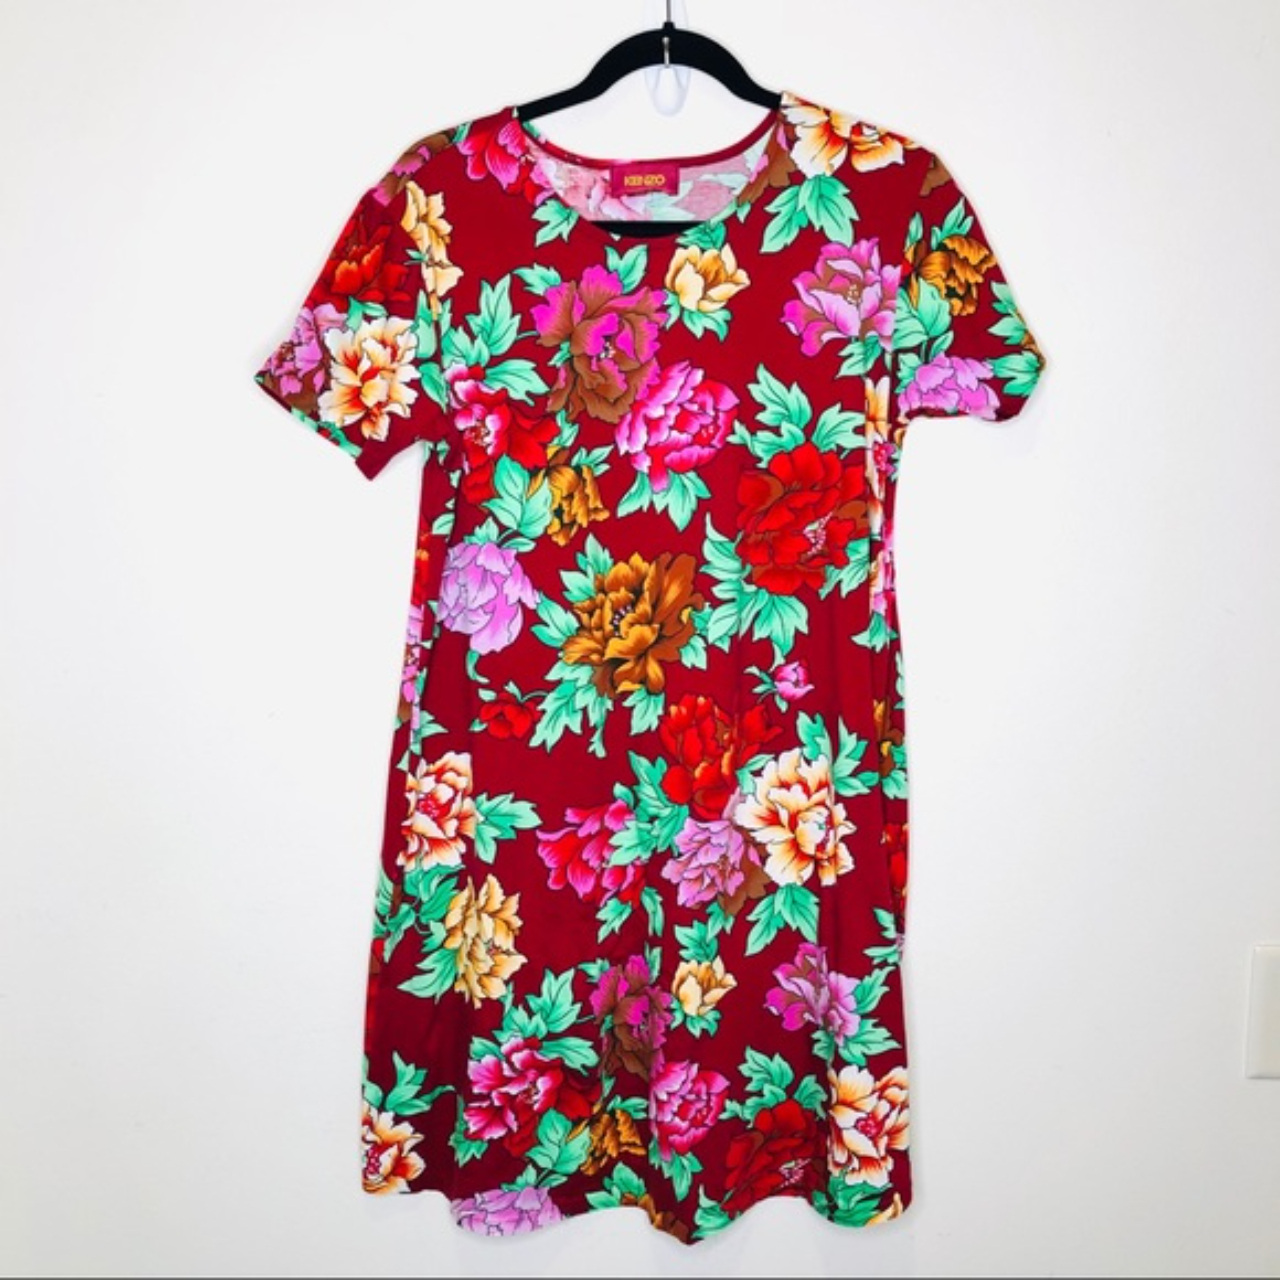 Product Image 1 - #KENZO Floral Jersey T-Shirt Mini